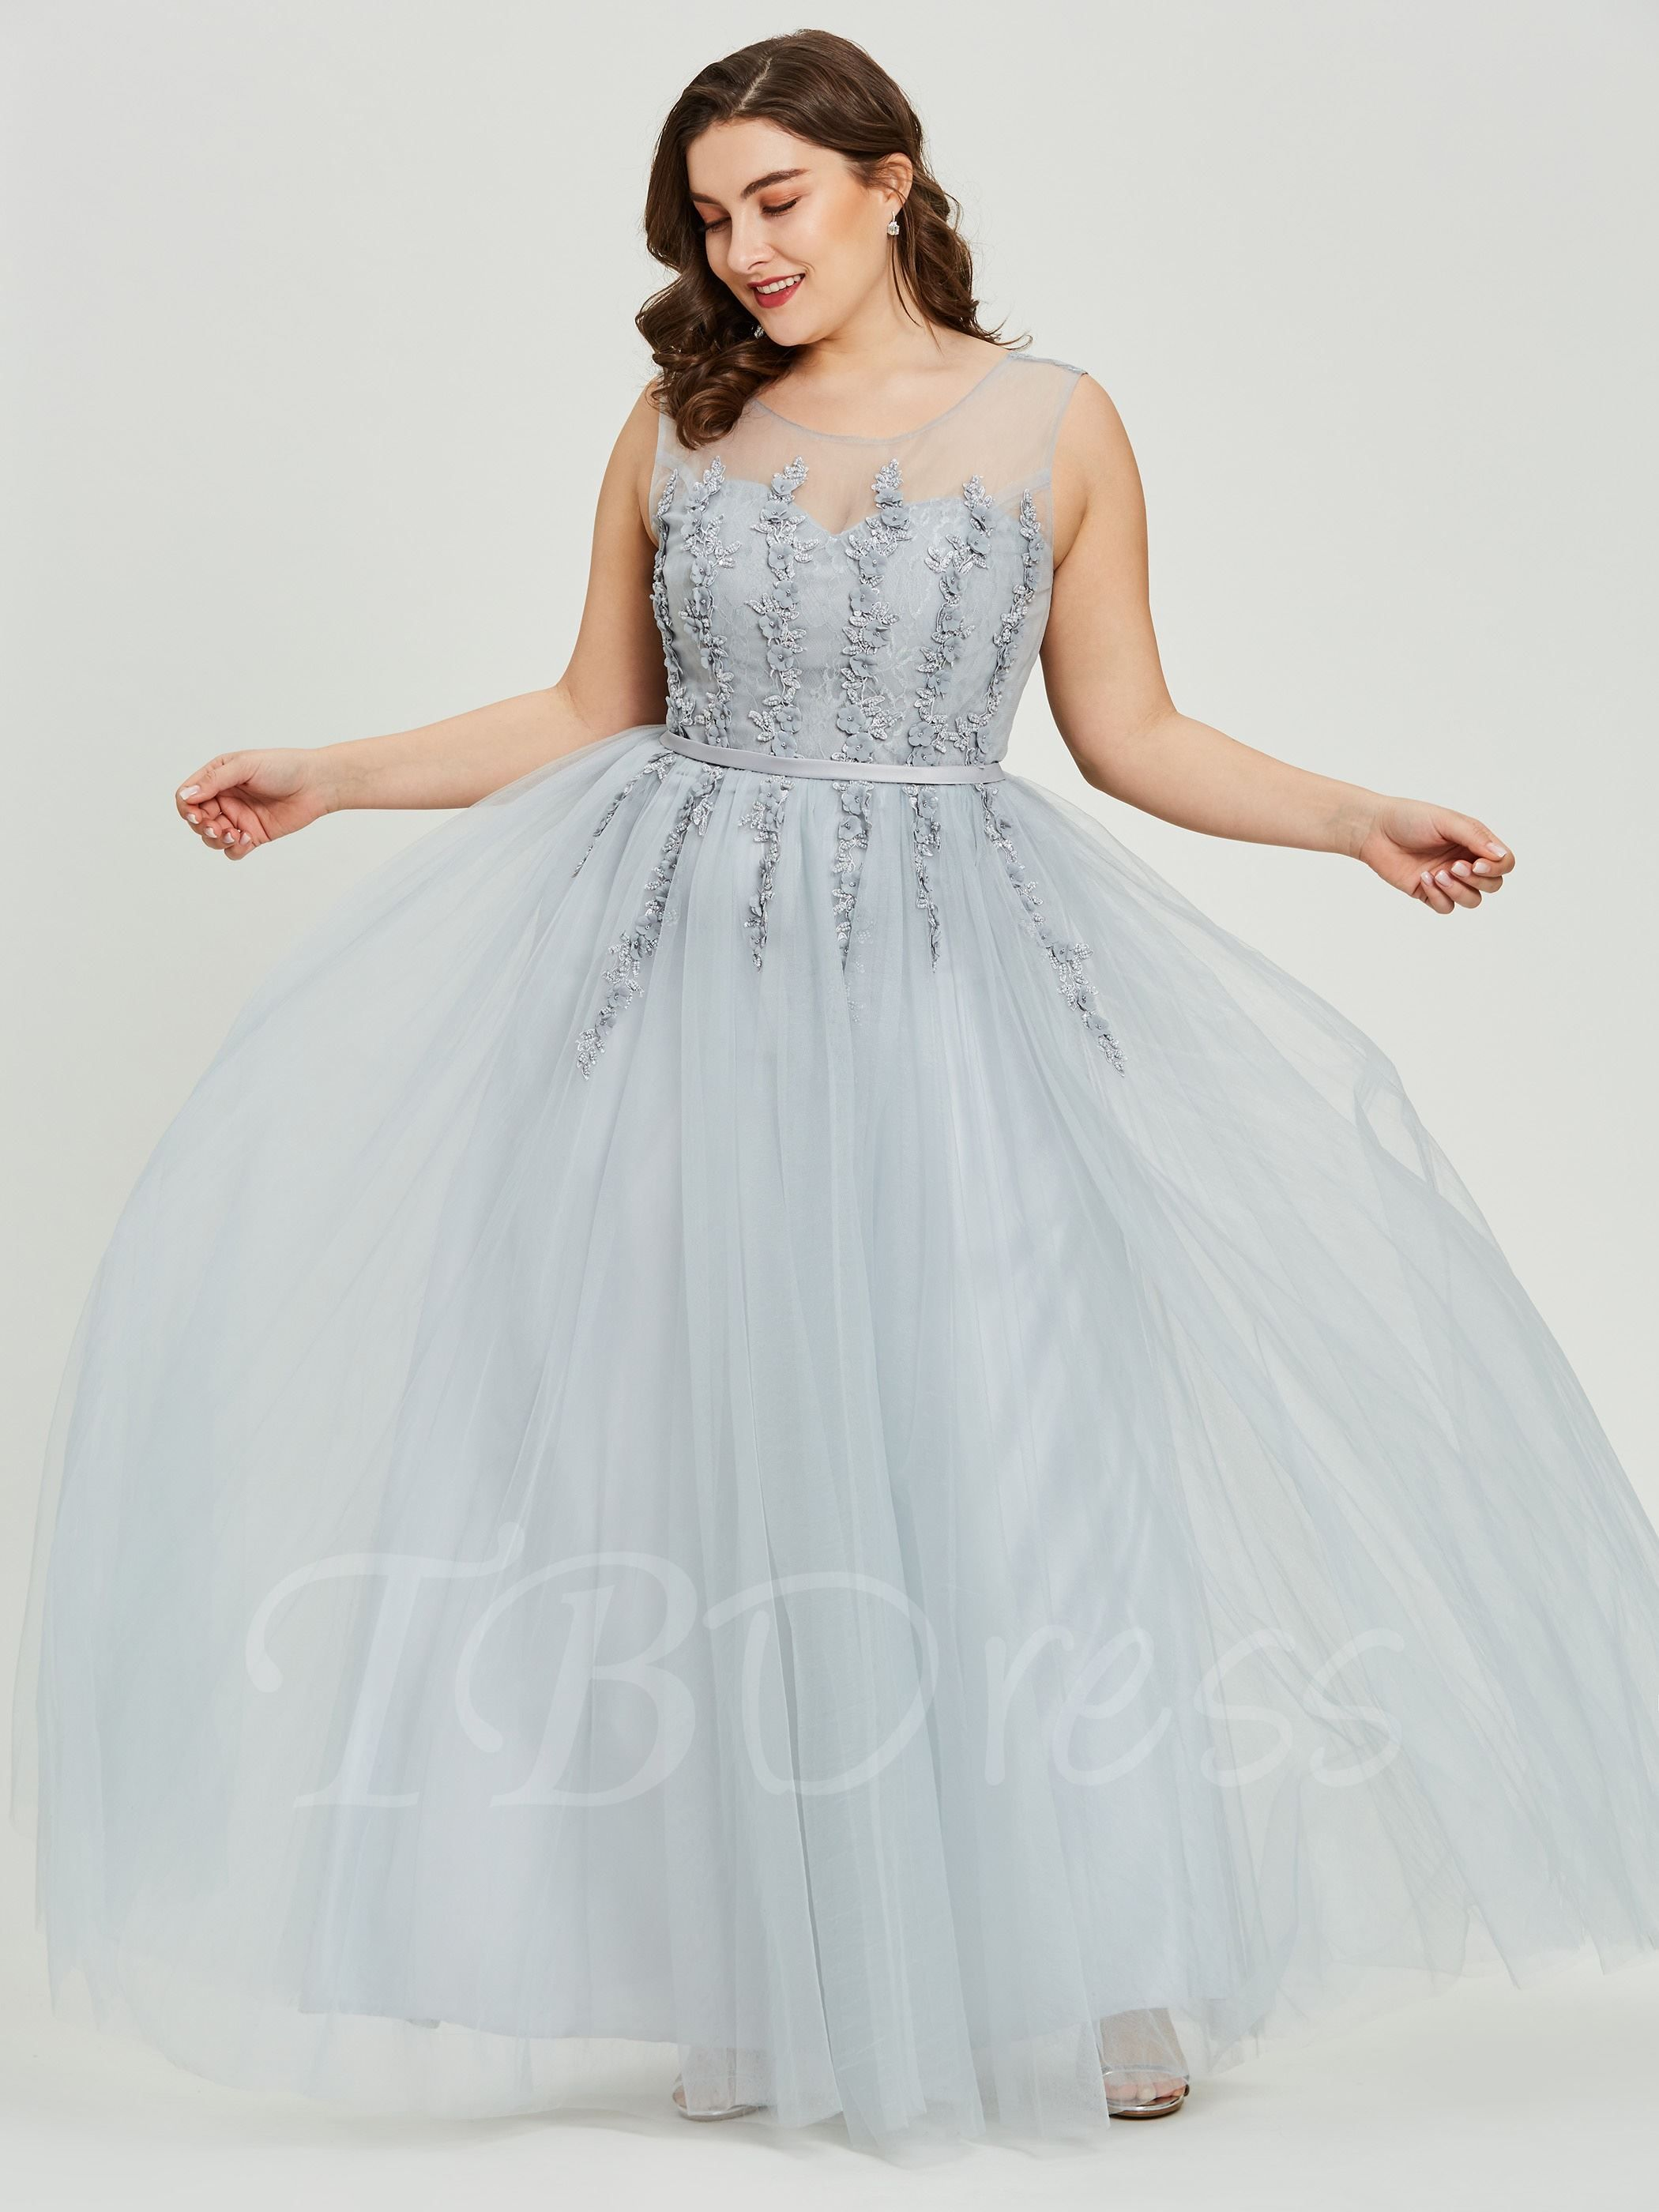 Scoop Beading A Line Plus Size Prom Dress Plus size prom